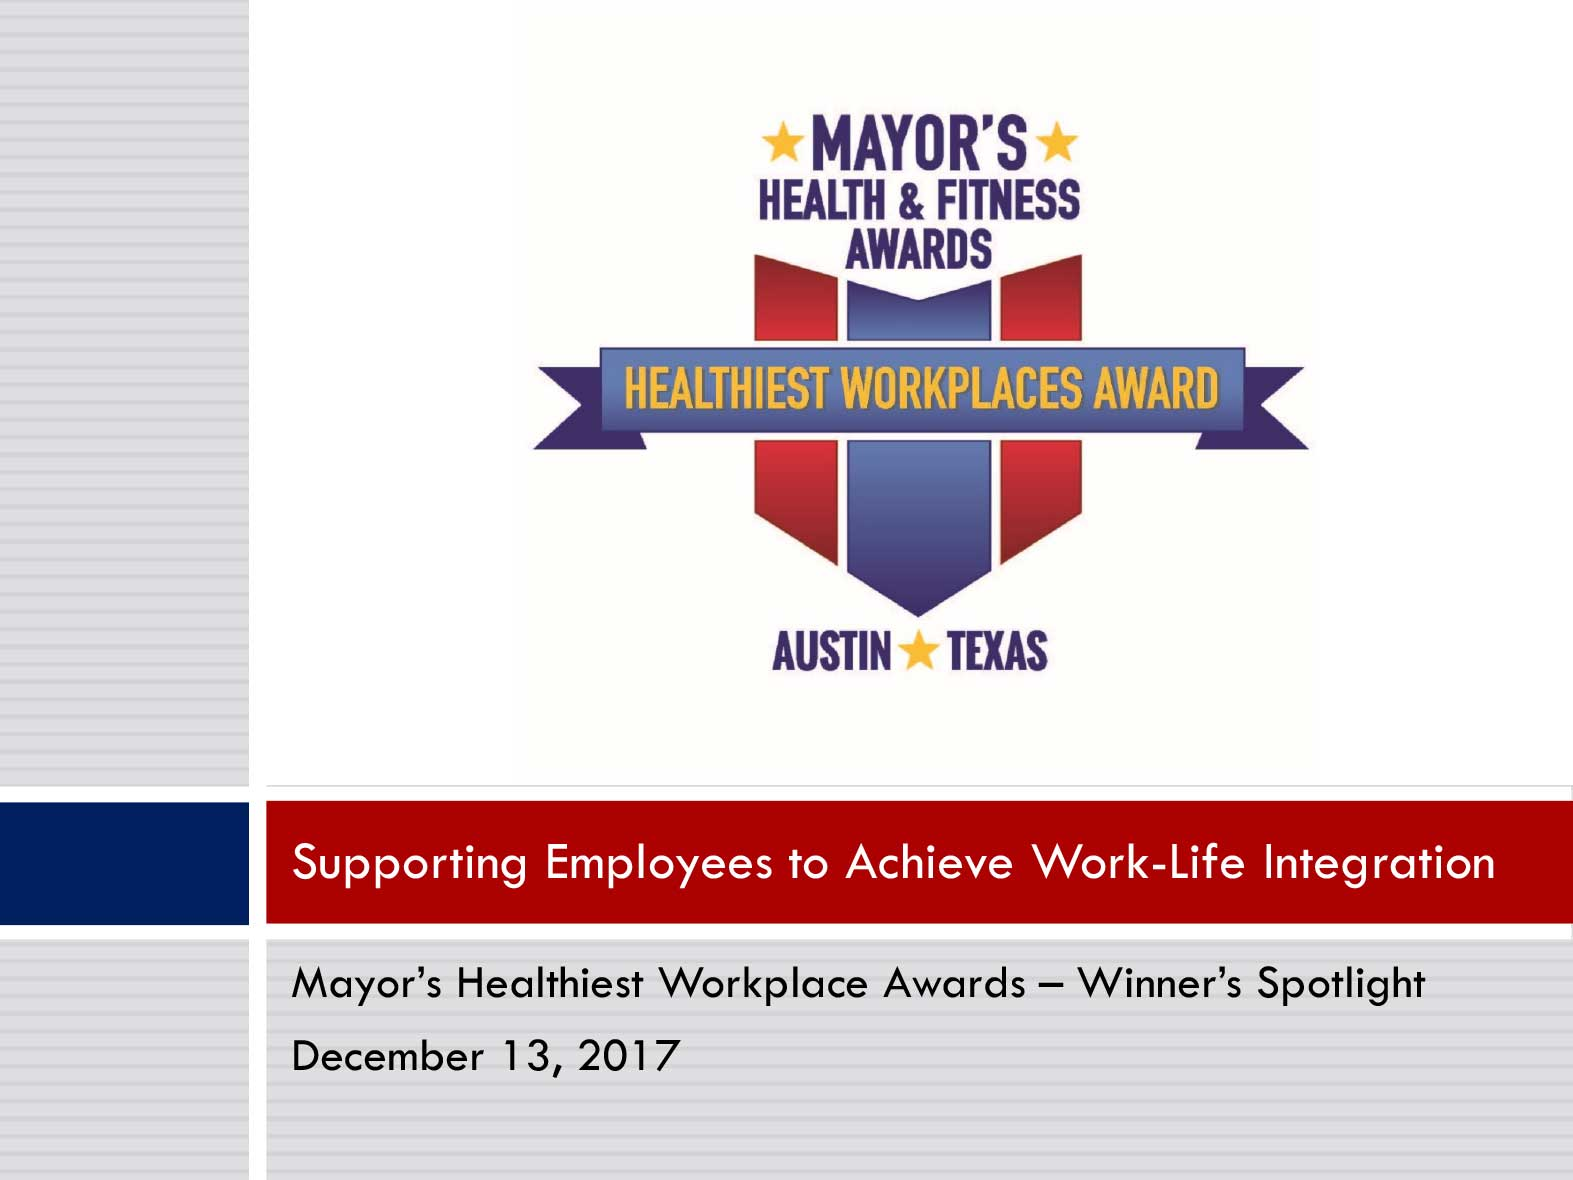 Winner's Spotlight - Supporting Employees to Achieve Work-Life Integration